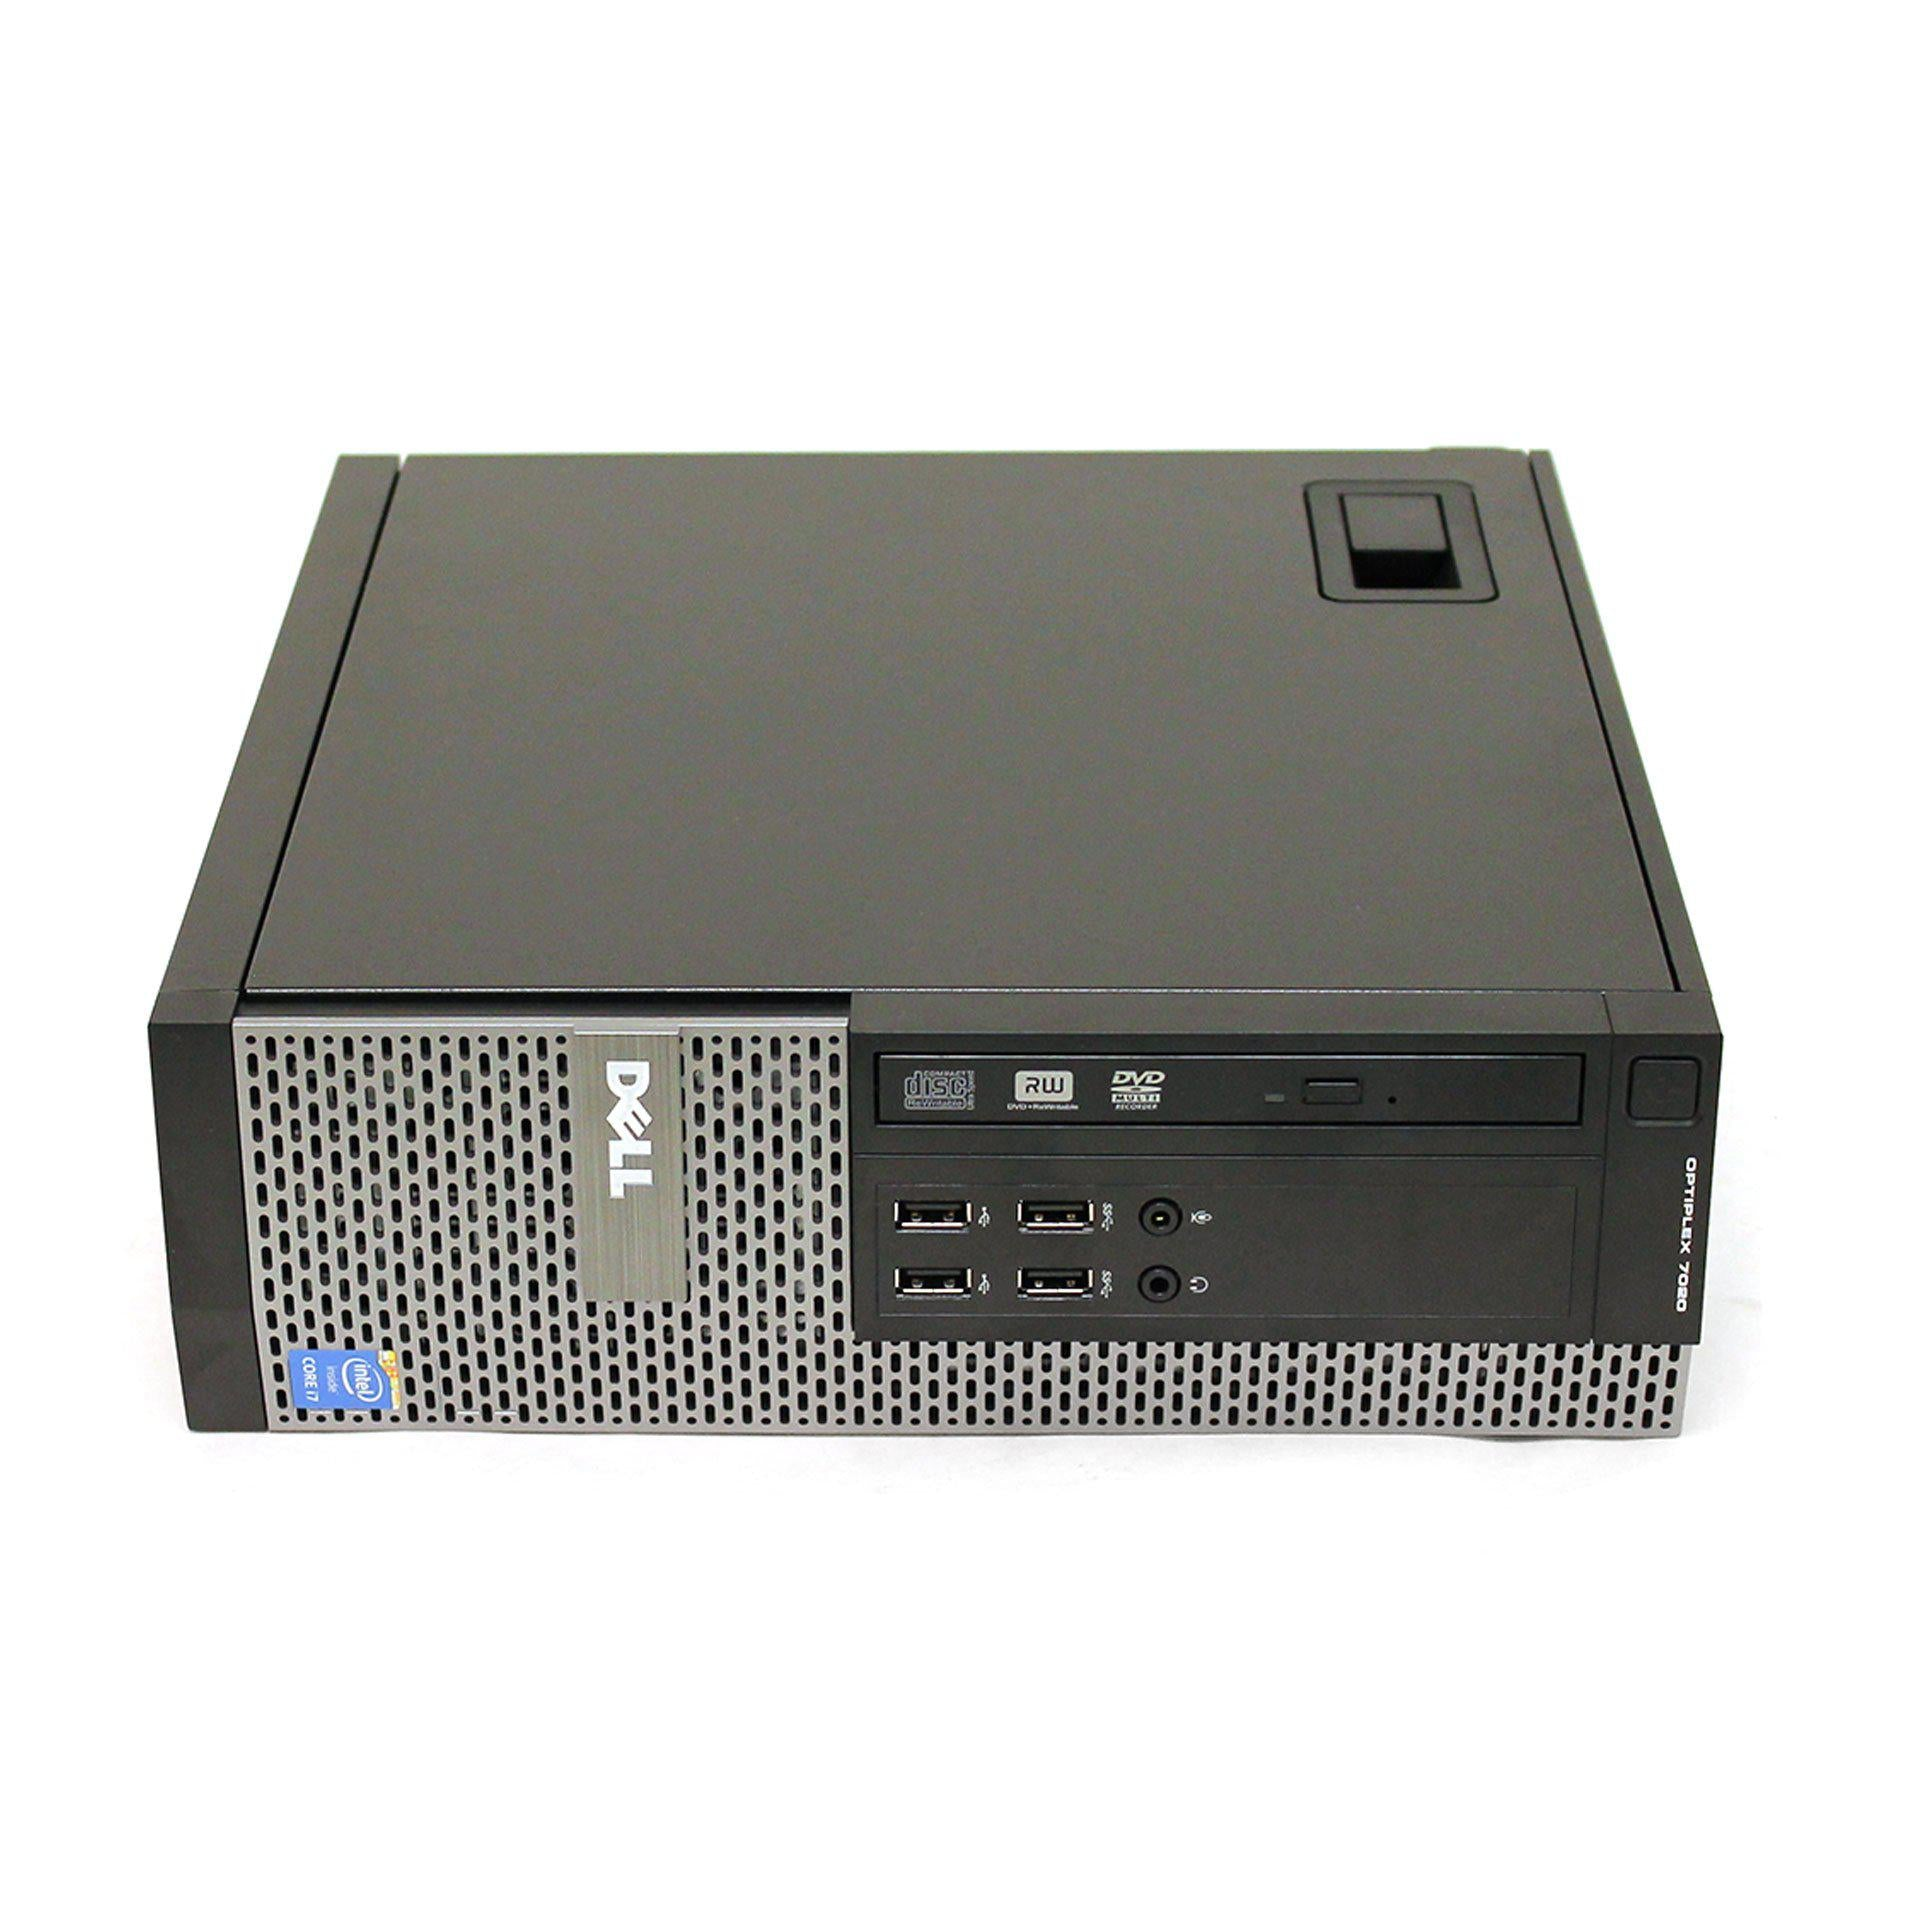 Dell Optiplex 7020 Desktop Intel Quad Core i7 3.4Ghz Windows 10 Pro Refurbished